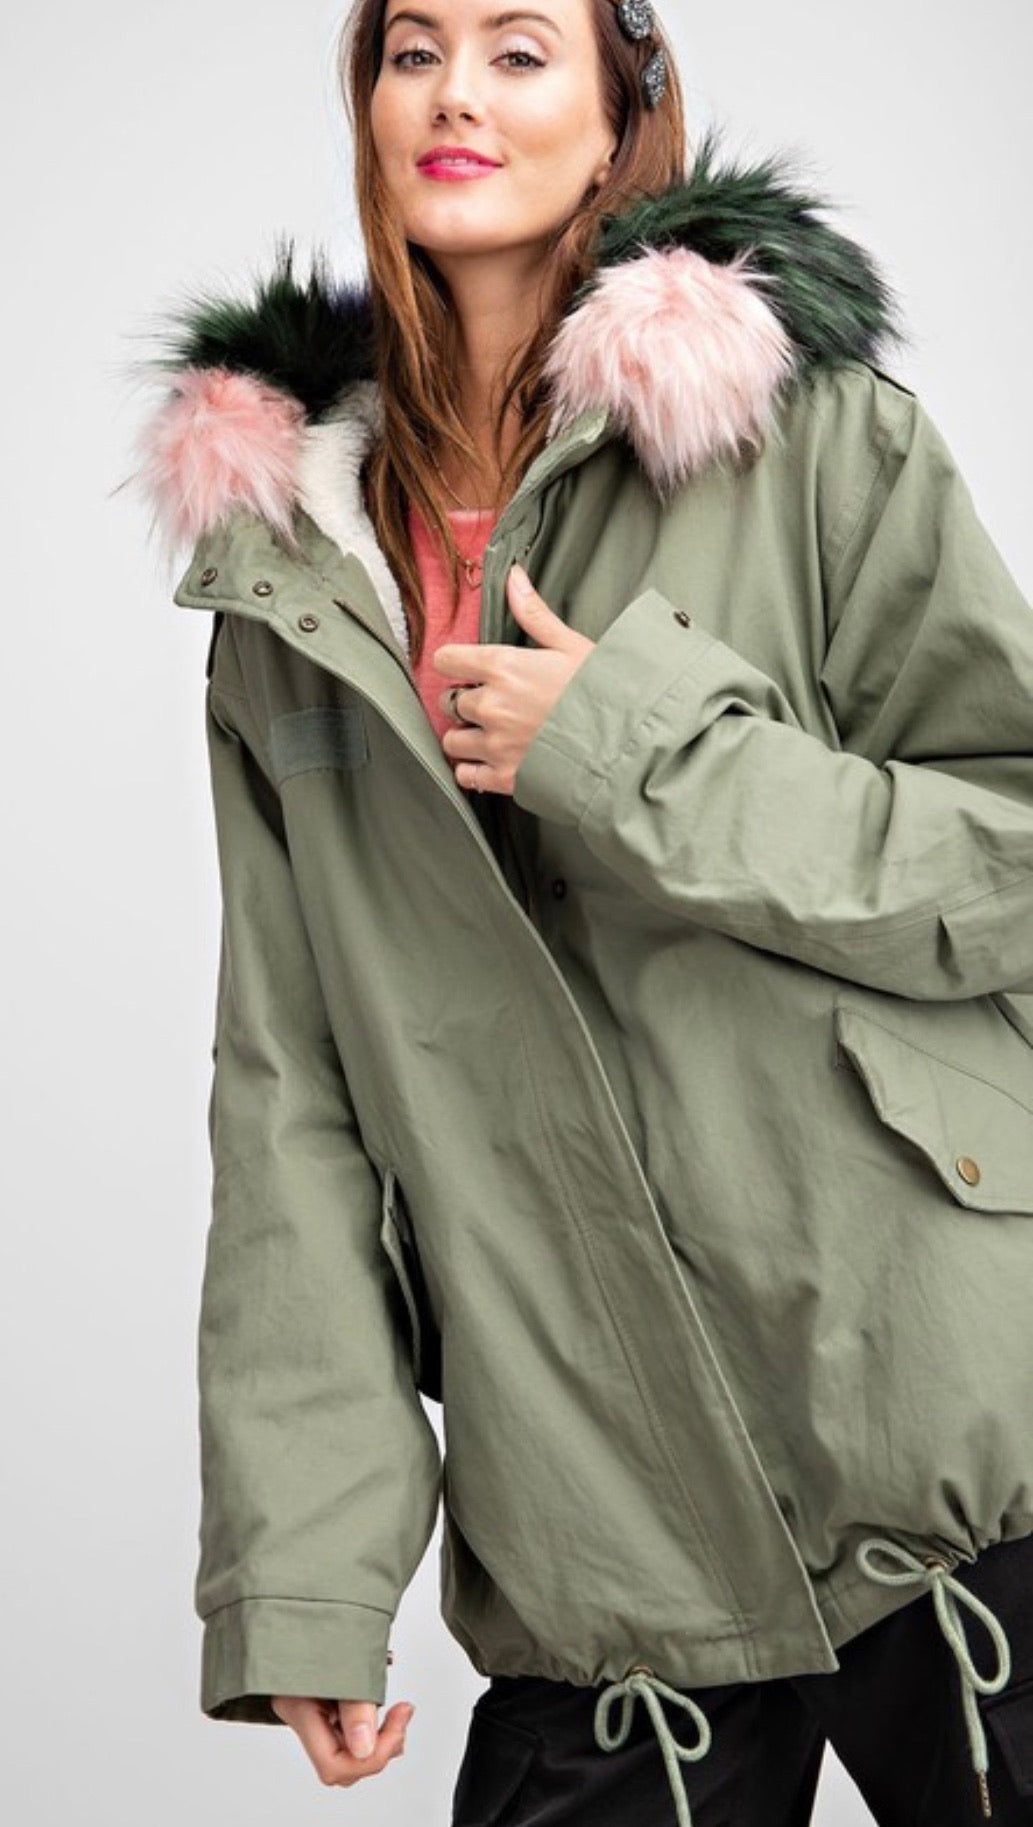 Military Loose-Fit Bomber Coat with Removable Fur Collar | Cheeky Cactus